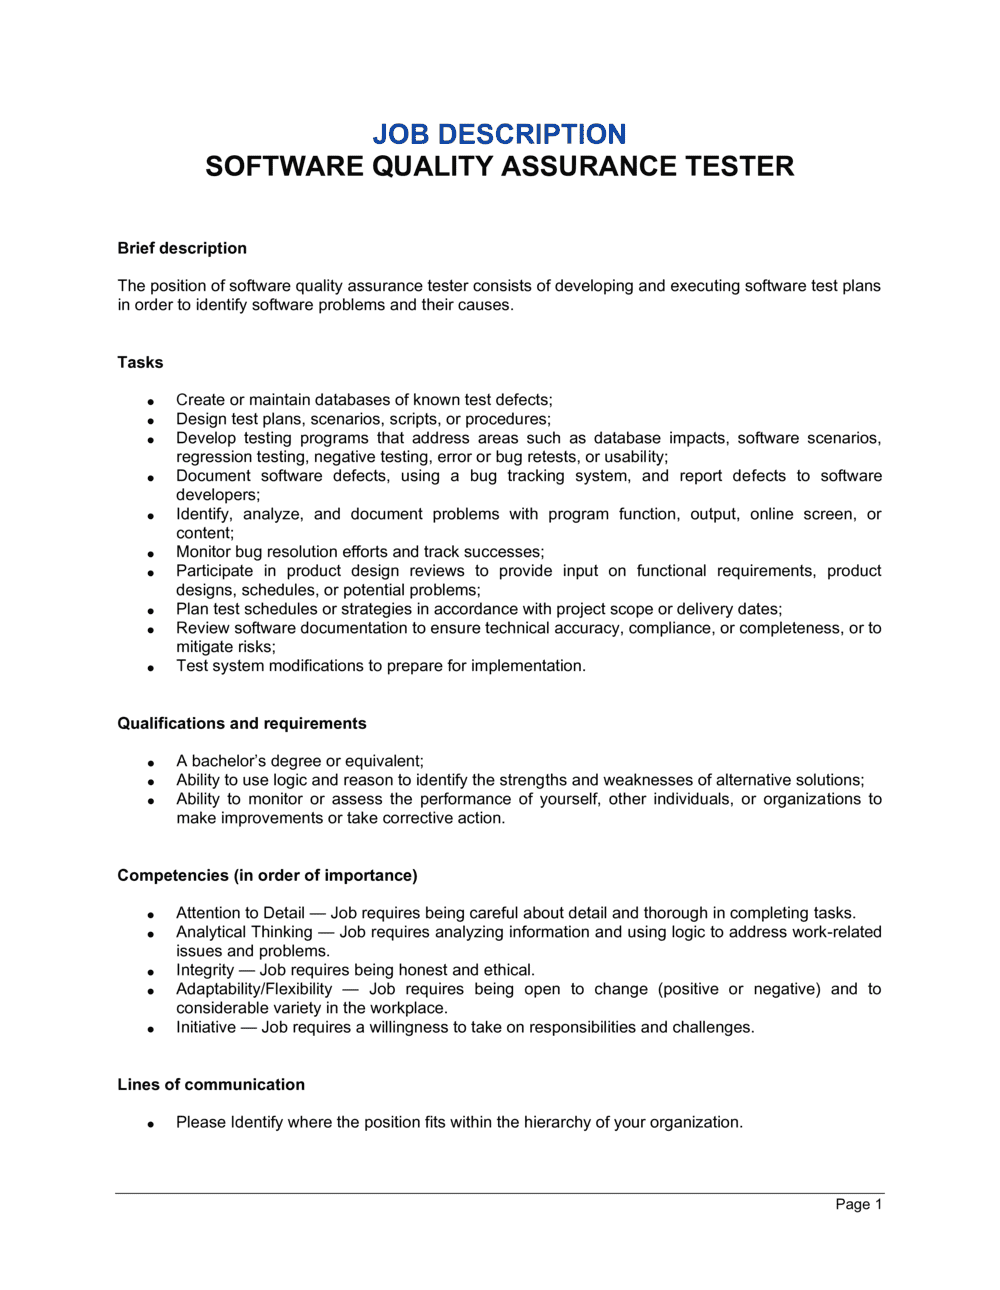 Business-in-a-Box's Software Quality Assurance Tester Job Description Template